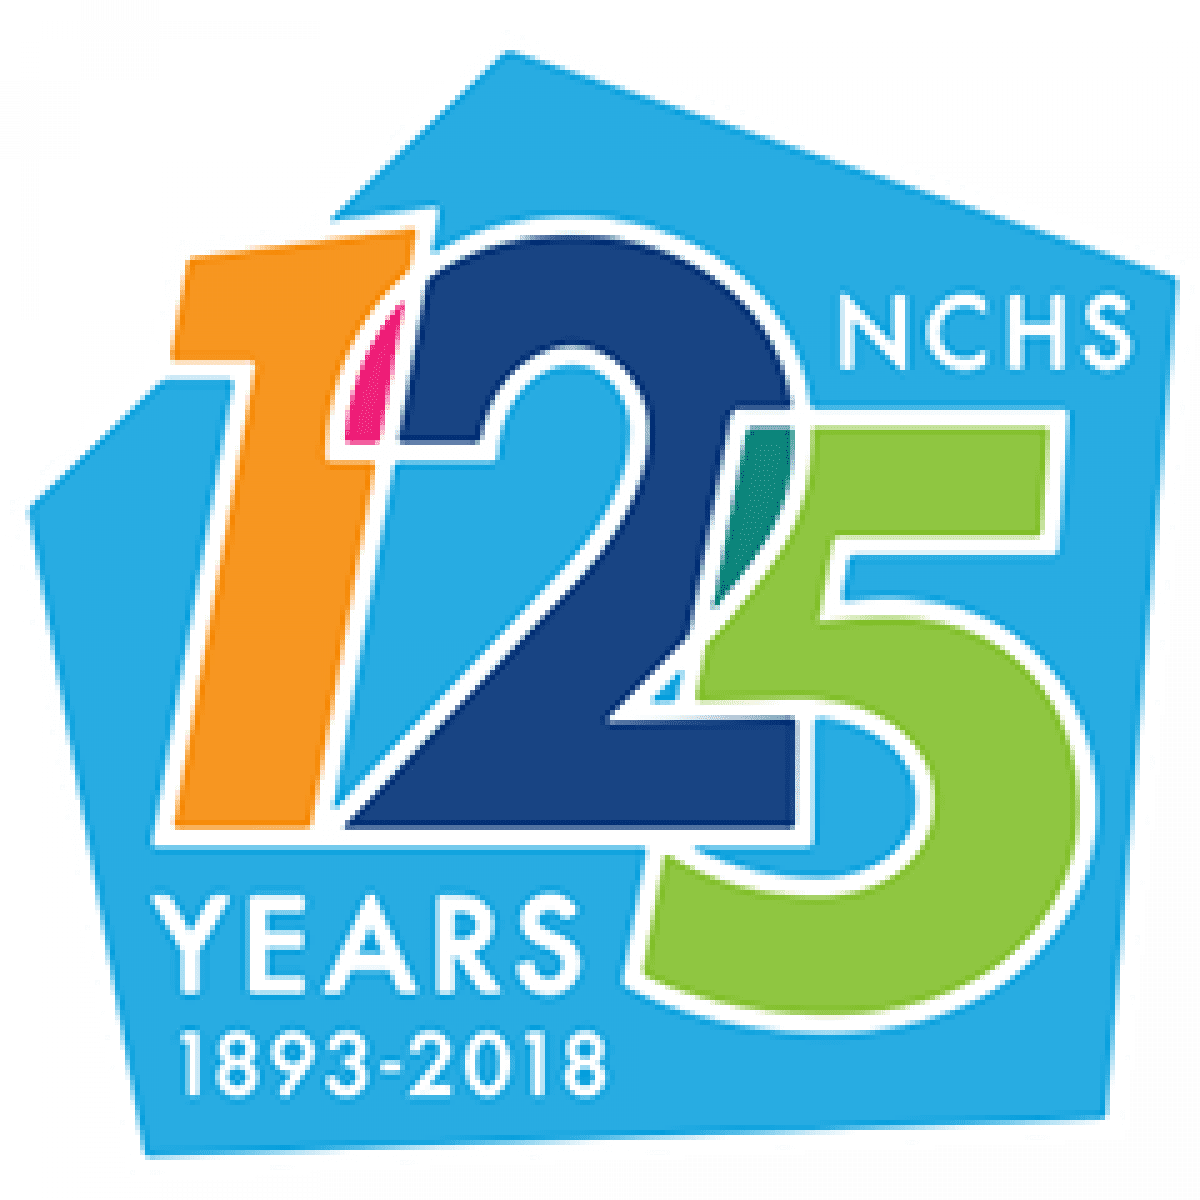 125th Anniversary of NCHS